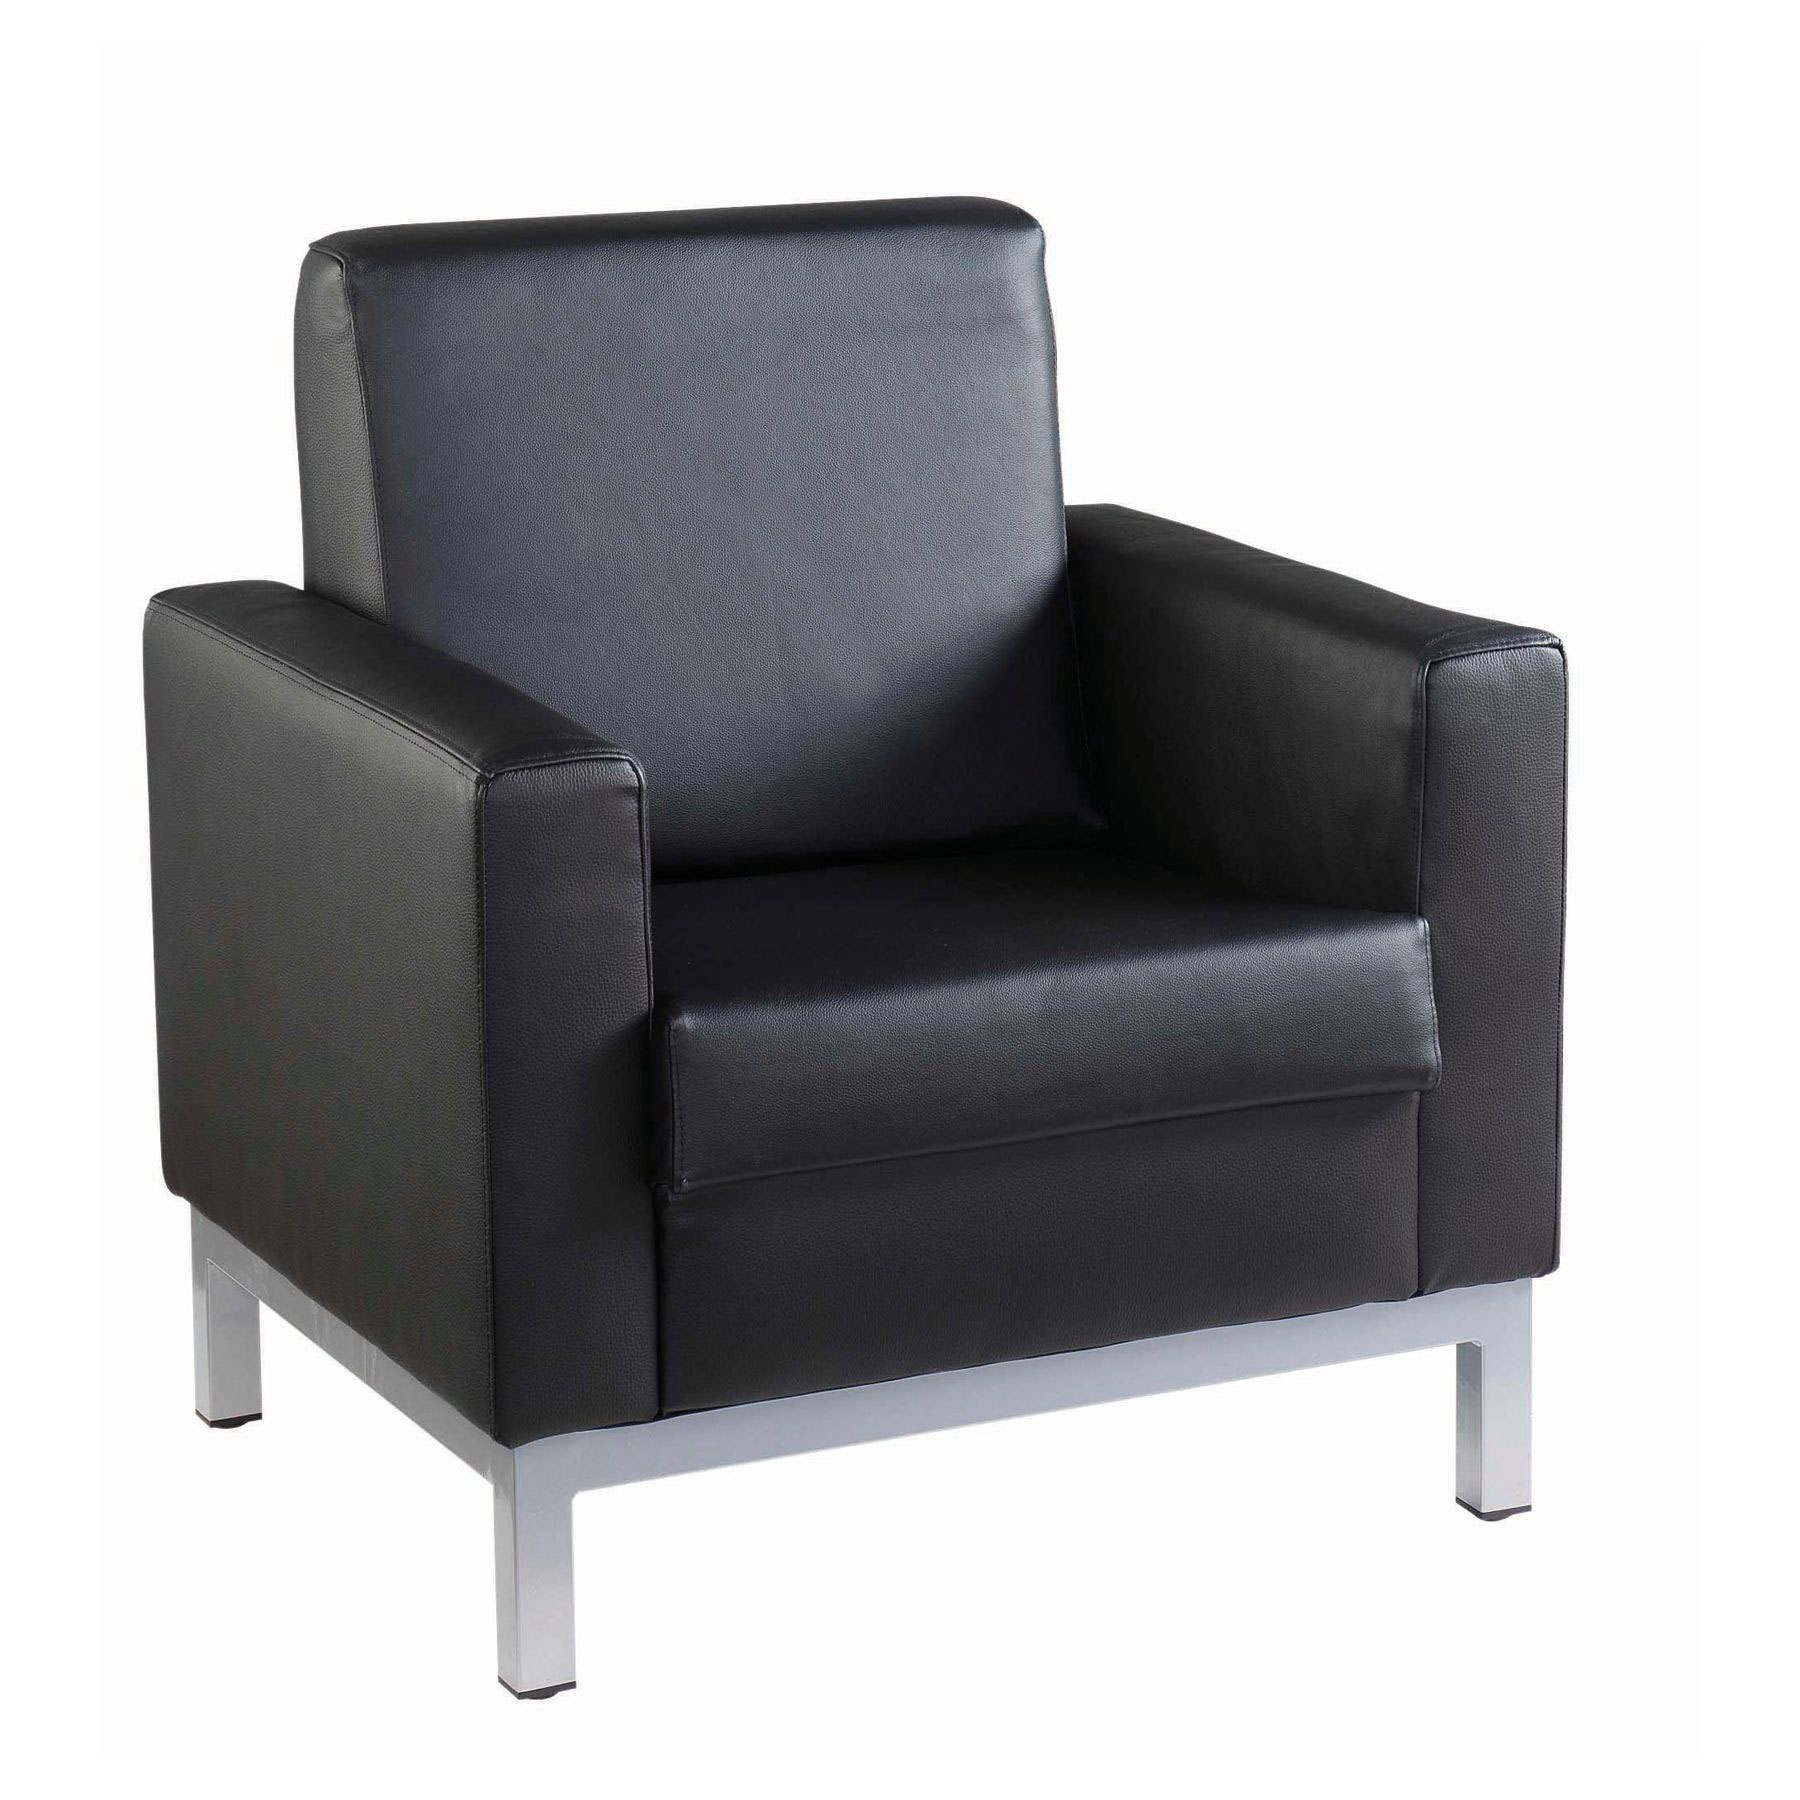 Helsinki Leather Faced Reception Seating Single